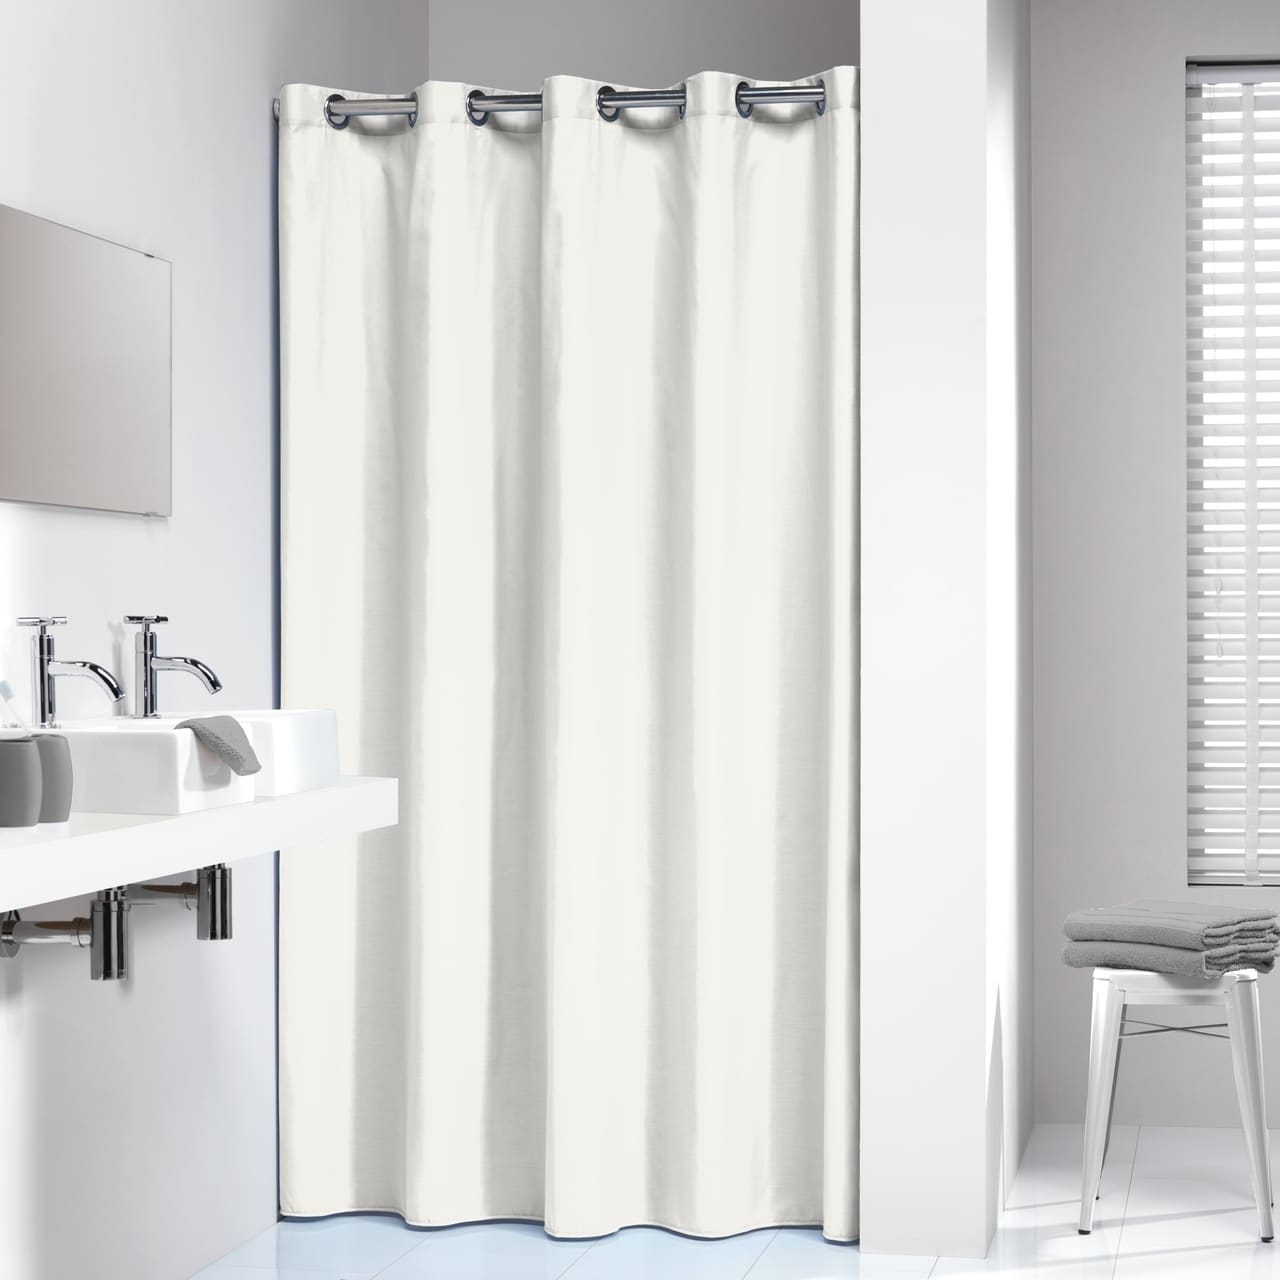 Sealskin Extra Long Hookless Shower Curtain 78 X 72 Inch Coloris